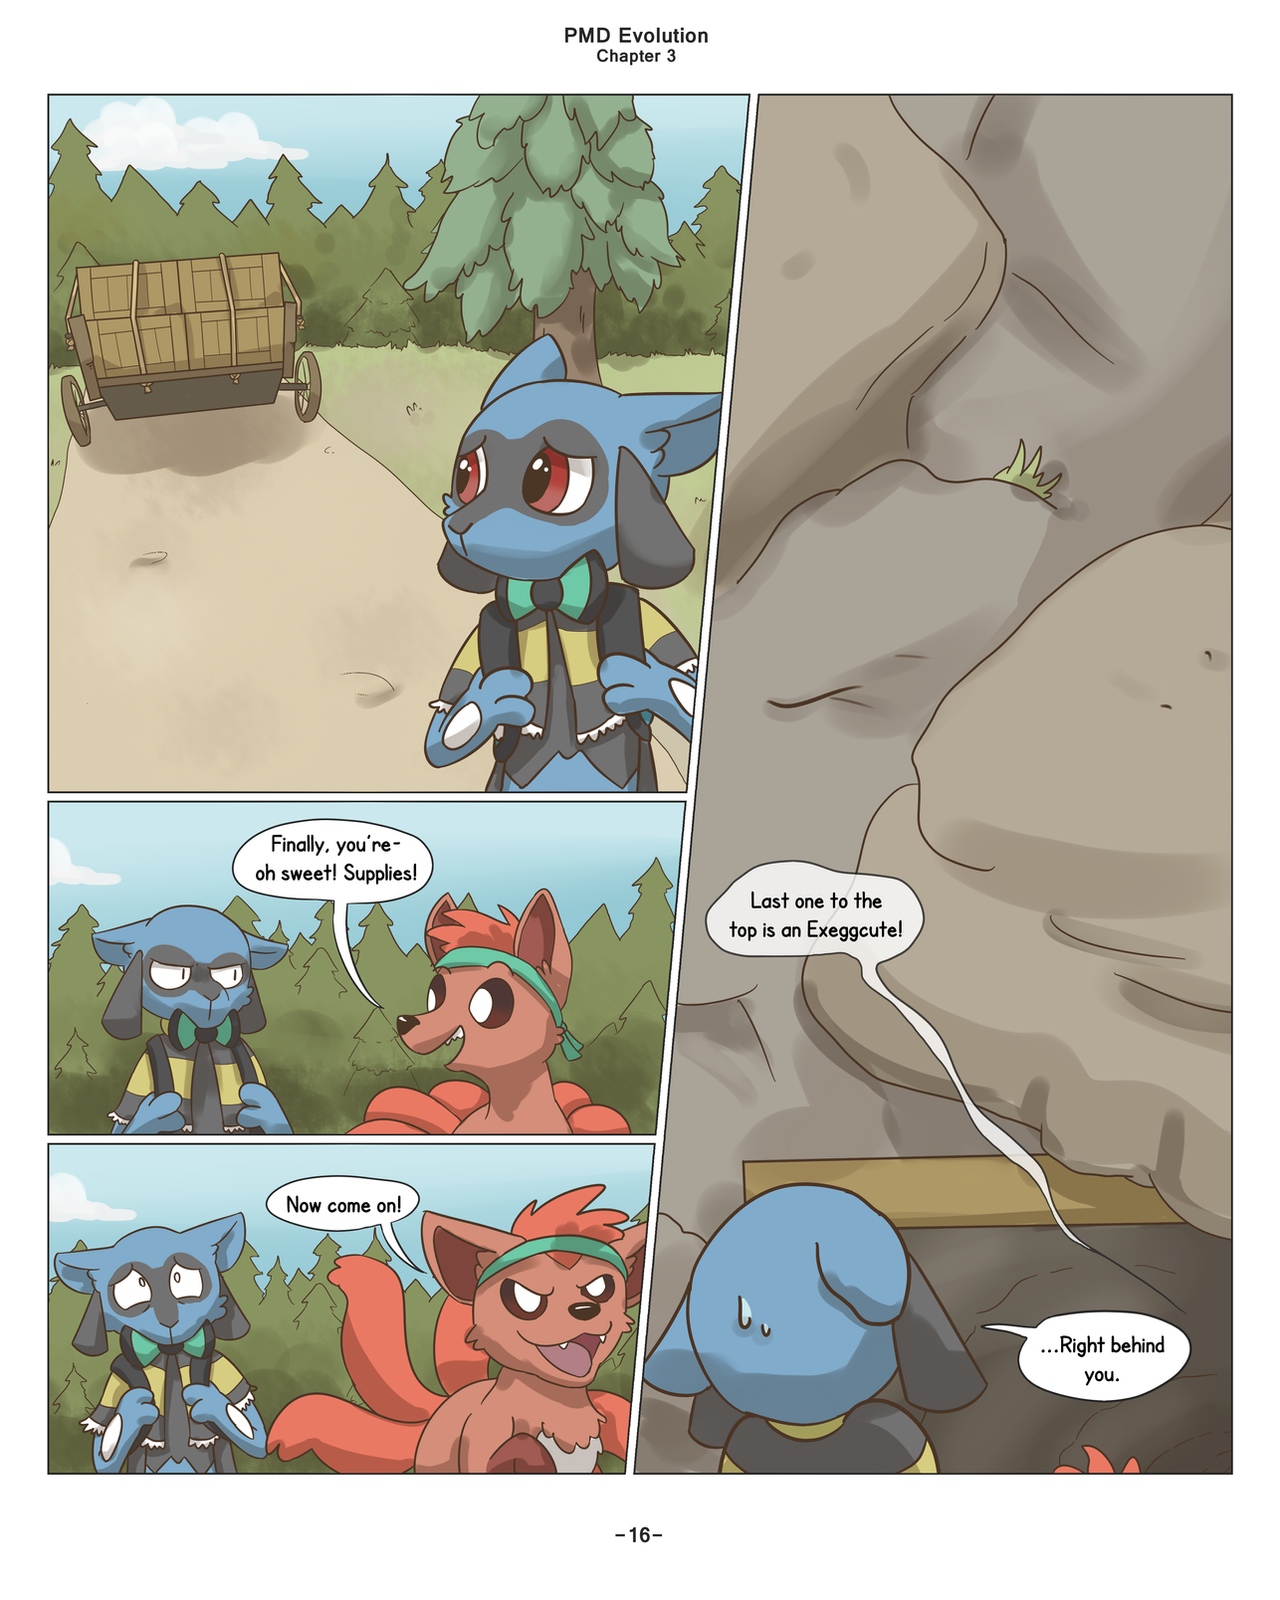 PMD Evolution: Chapter 3 page 16 by Snapinator on DeviantArt on